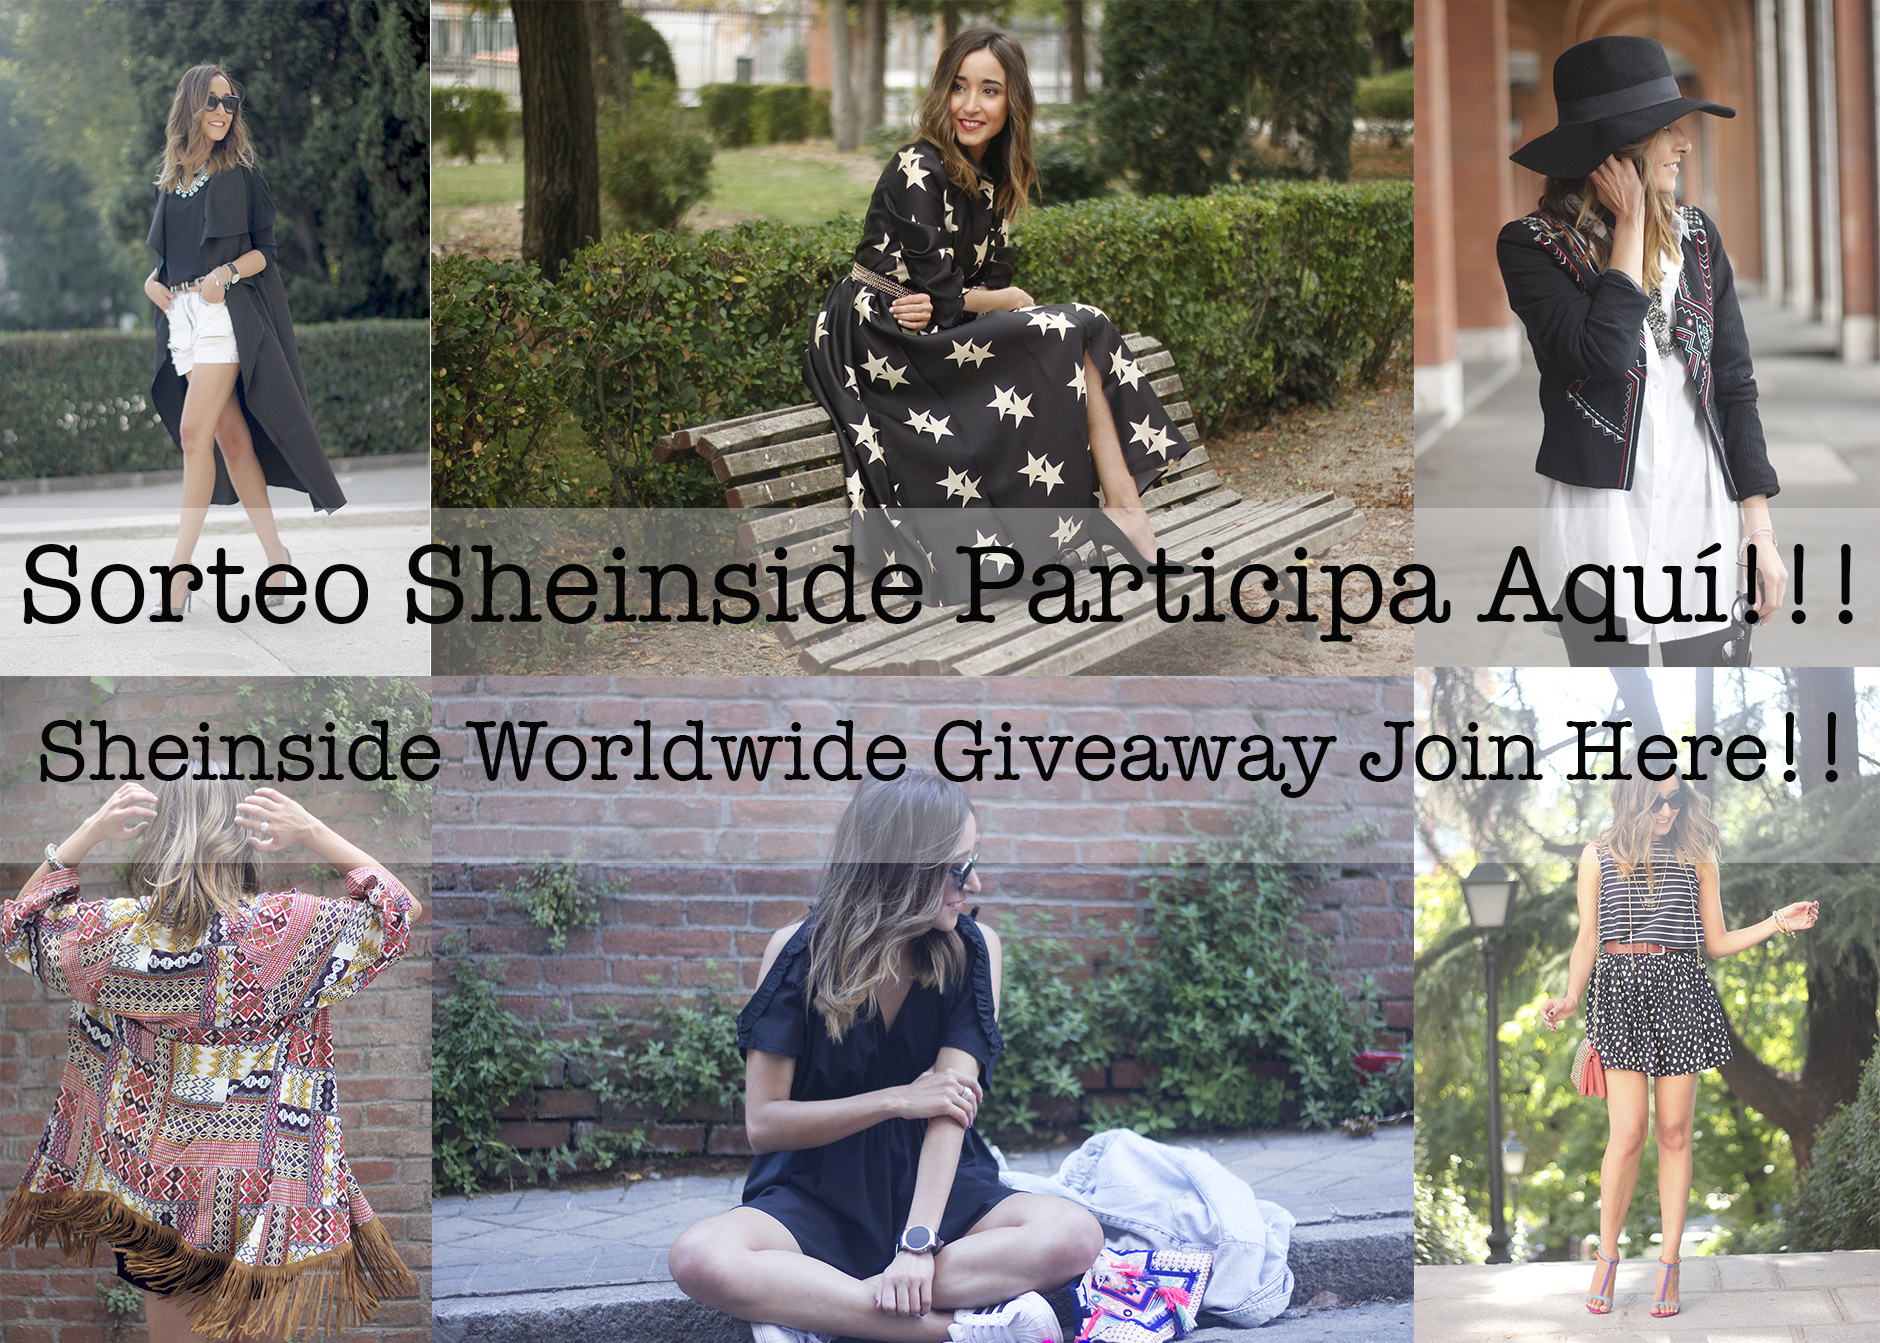 Sheinside worldwide Giveaway